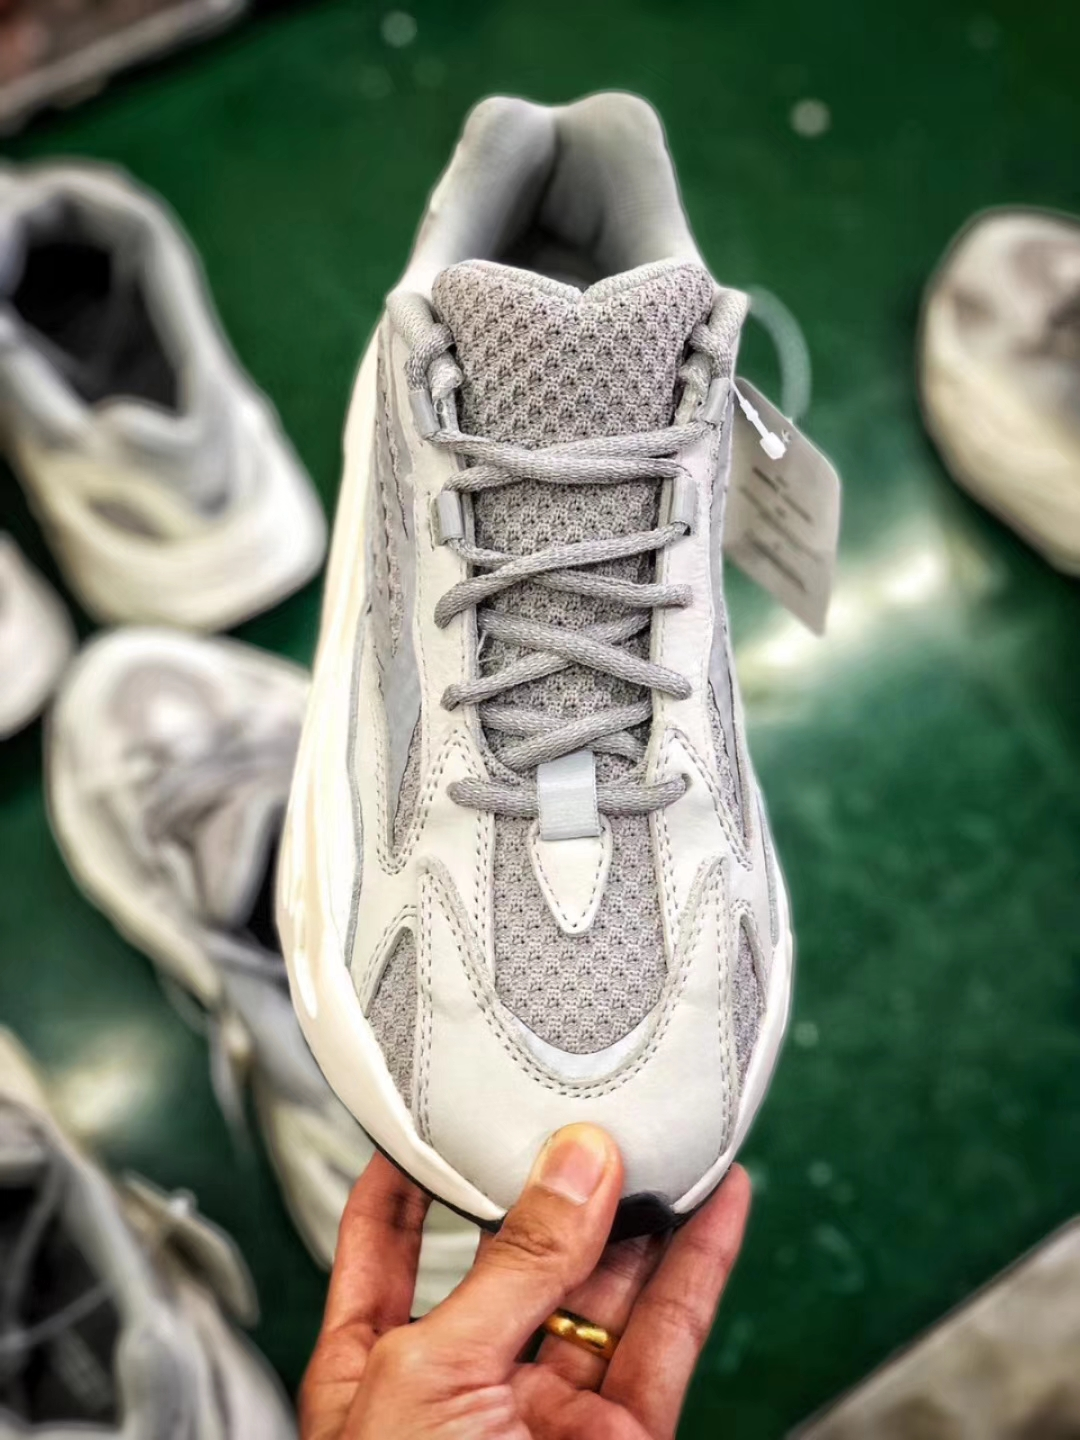 The Adidas Yeezy Boost 700 V2 Static Sneaker Best Quality RepShoes 01